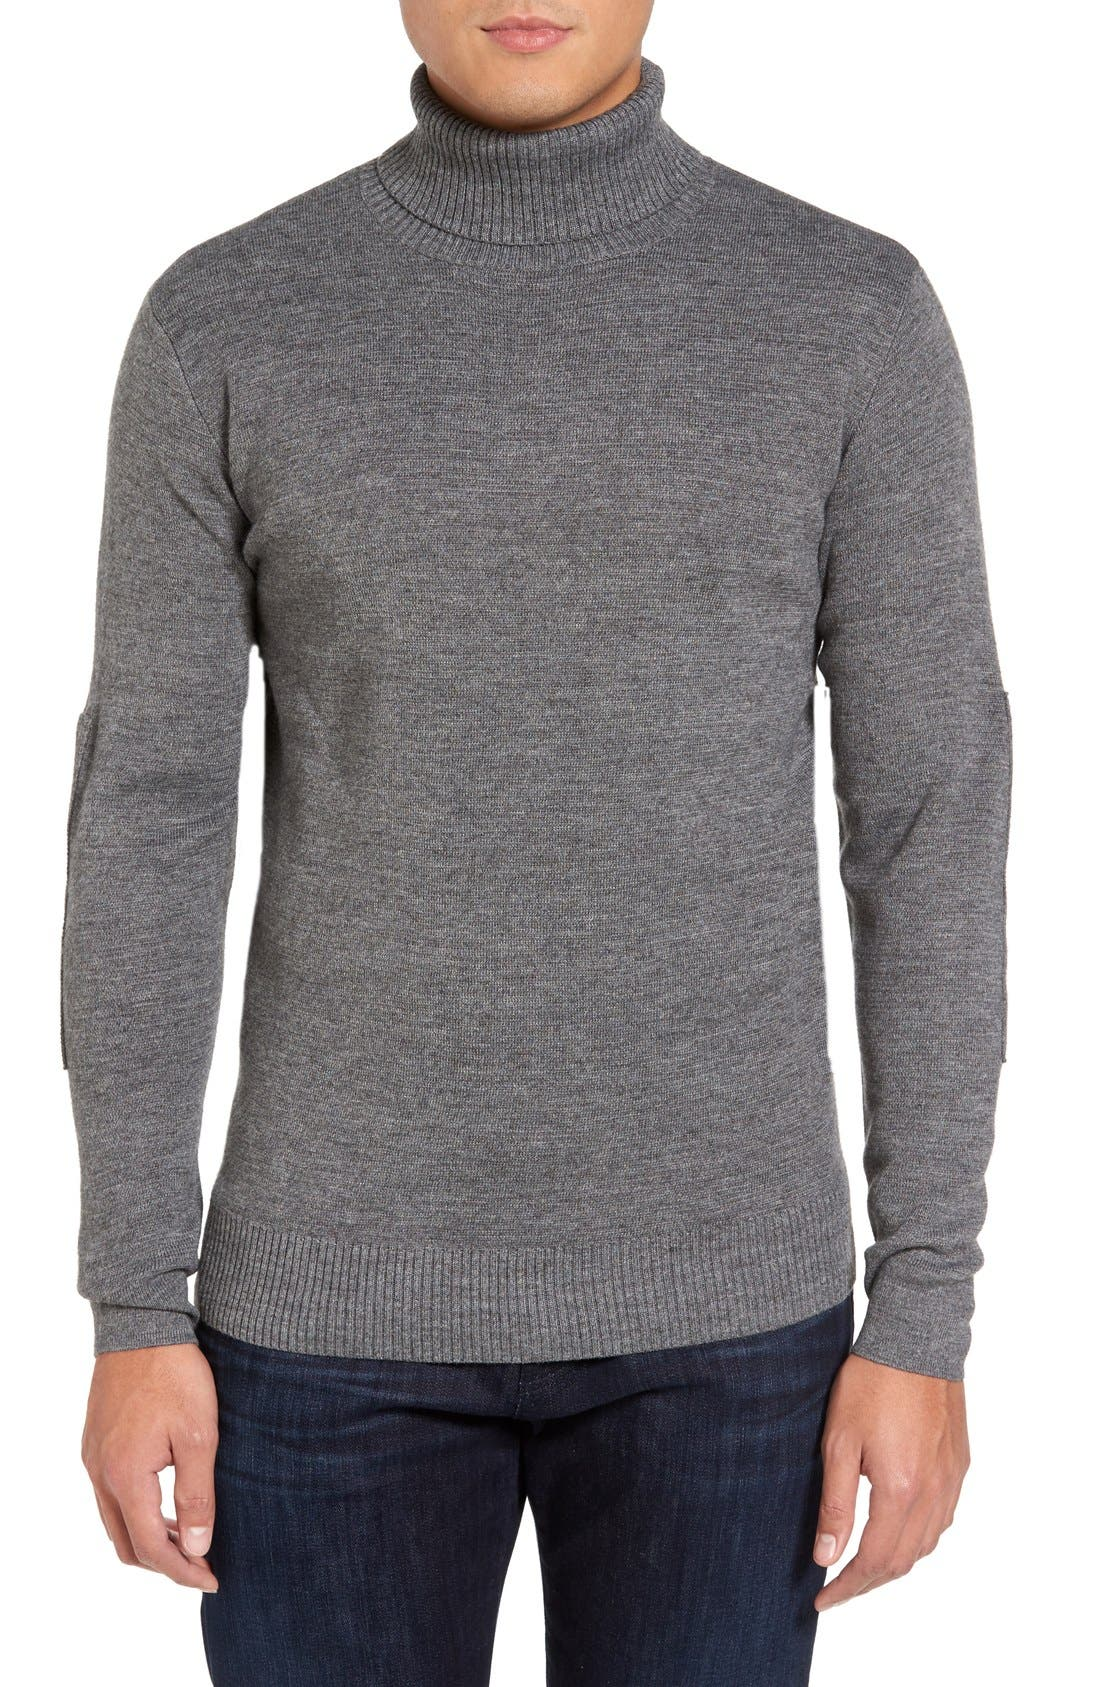 Alternate Image 1 Selected - Slate & Stone Merino Wool Blend Turtleneck Sweater